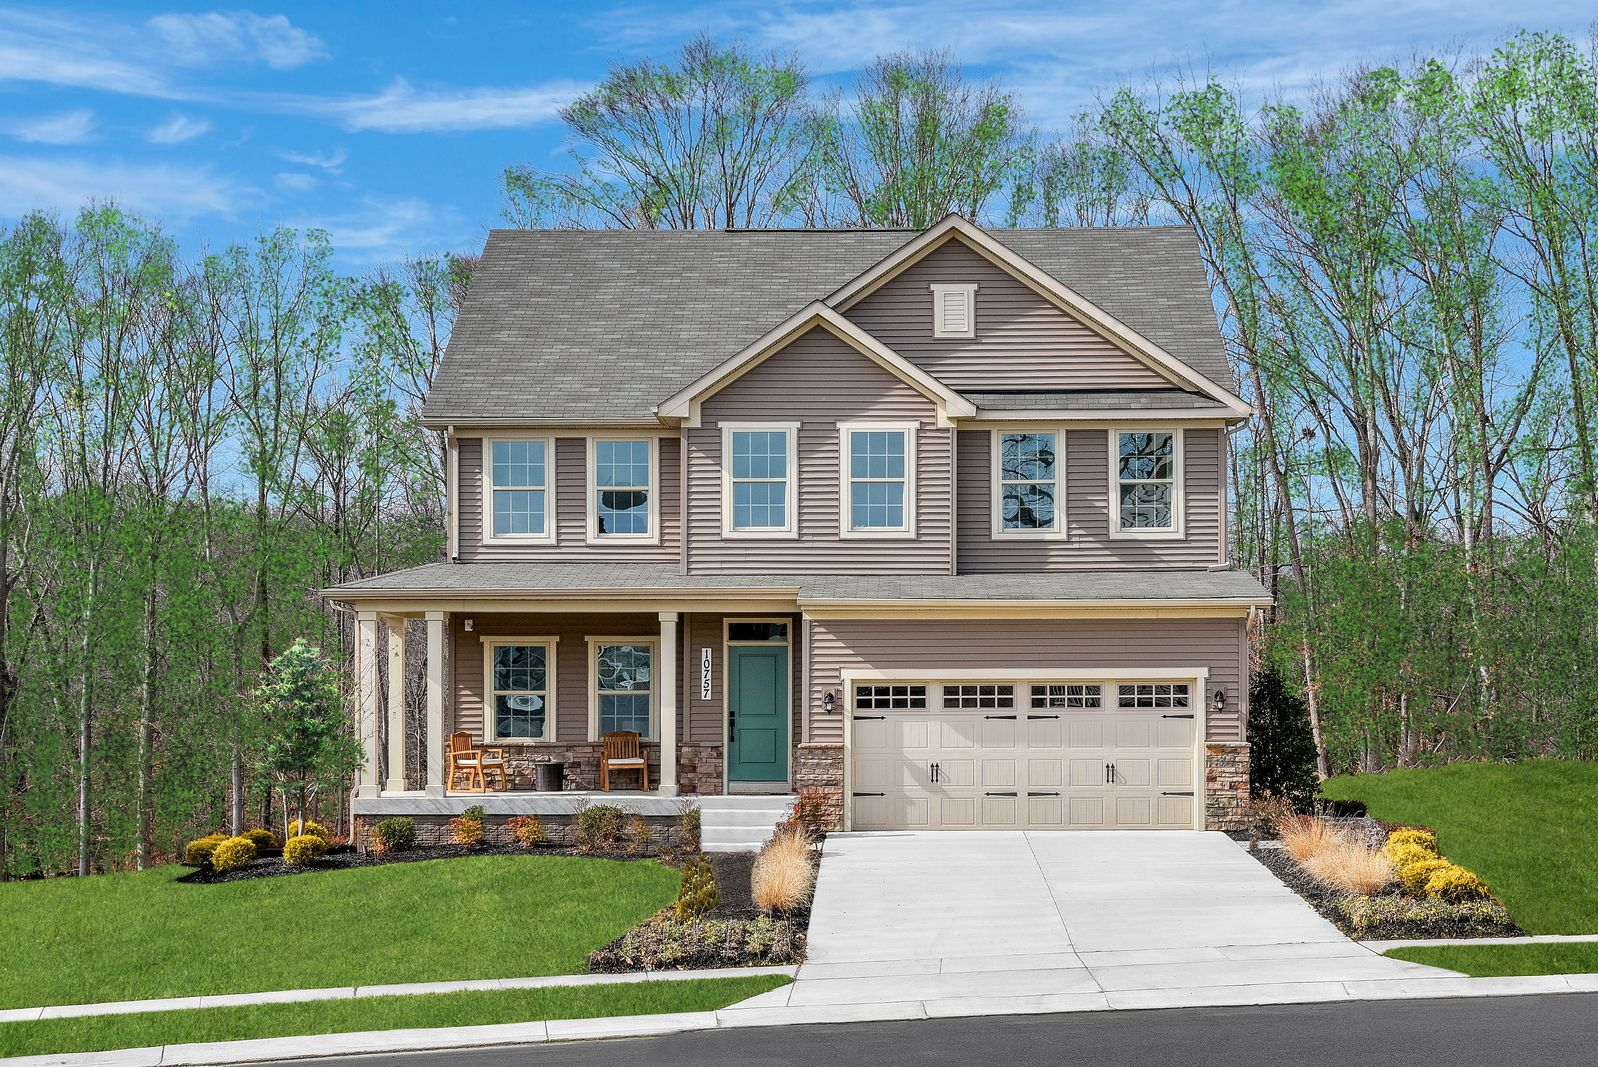 WELCOME TO CHRISTOPHER POINTE:Own a single family home in a quiet wooded community.New homesites are released each month. Be one of the first to know when they are released - Join the VIP List.